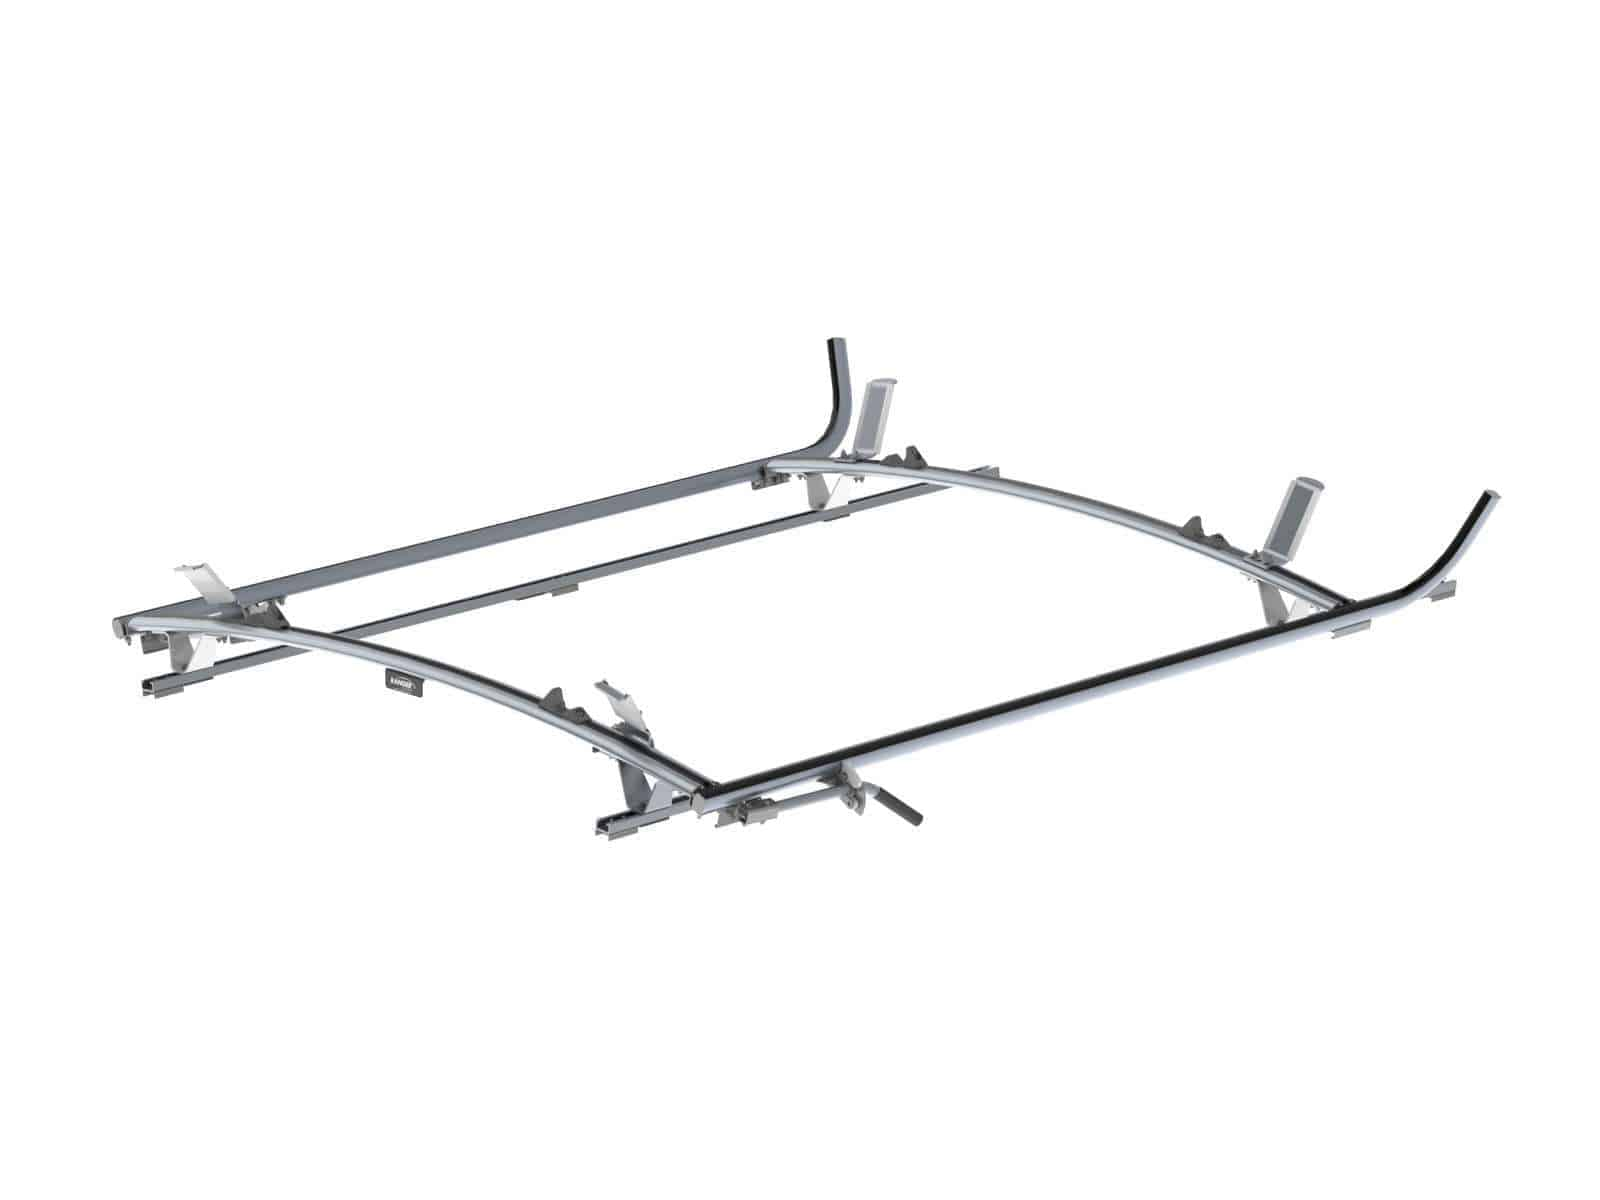 Double Side Ram Promaster Ladder Rack 2 Bar System